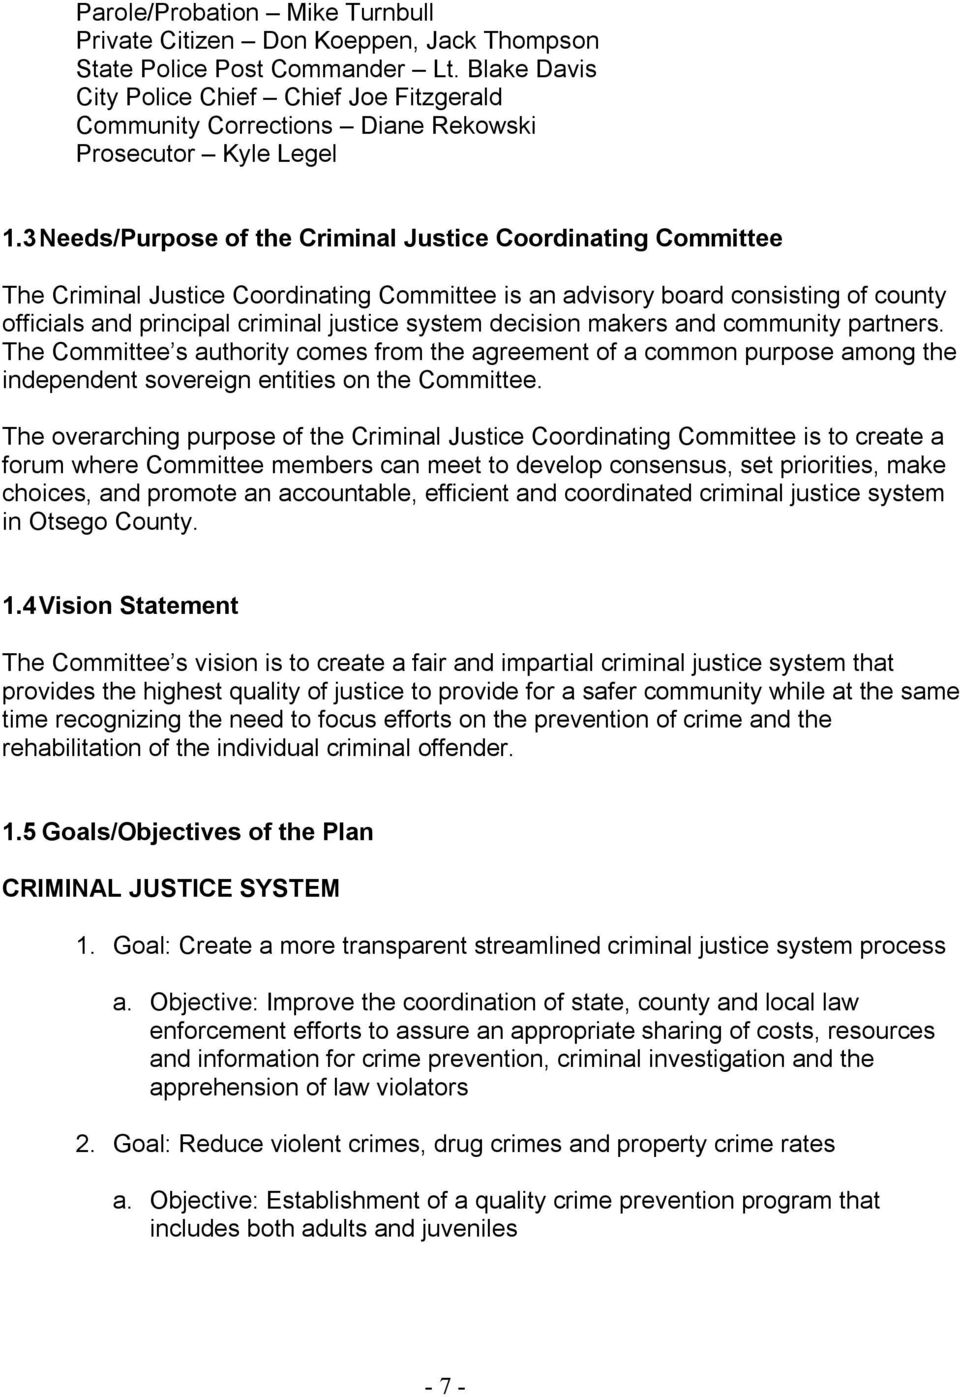 3Needs/Purpose of the Criminal Justice Coordinating Committee The Criminal Justice Coordinating Committee is an advisory board consisting of county officials and principal criminal justice system